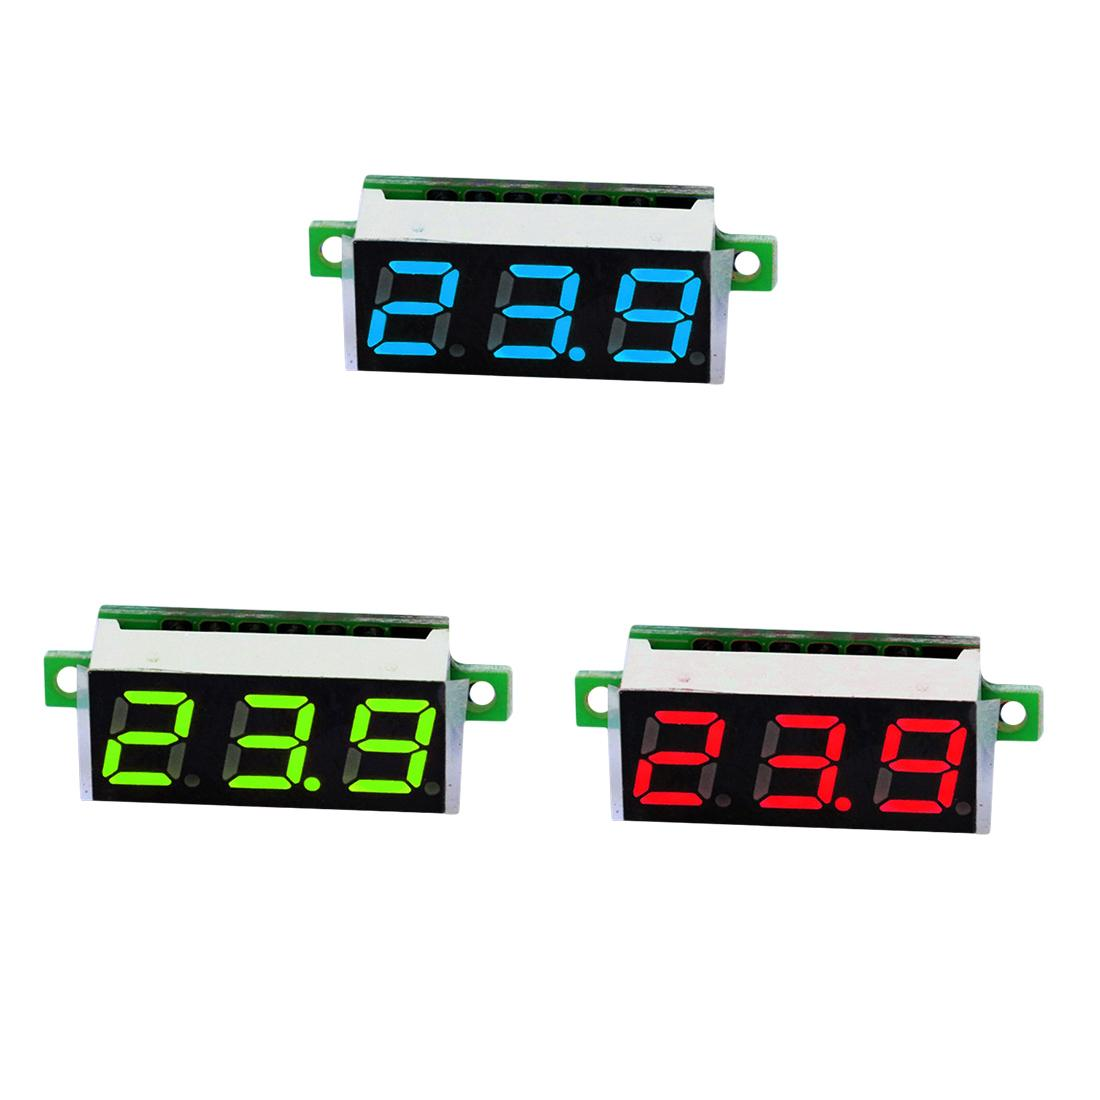 Mini Digital Voltmeter Voltage Tester Meter 028 Inch 25v 30v Led Electronics Test Circuit For A Series Including Screen Electronic Parts Accessories